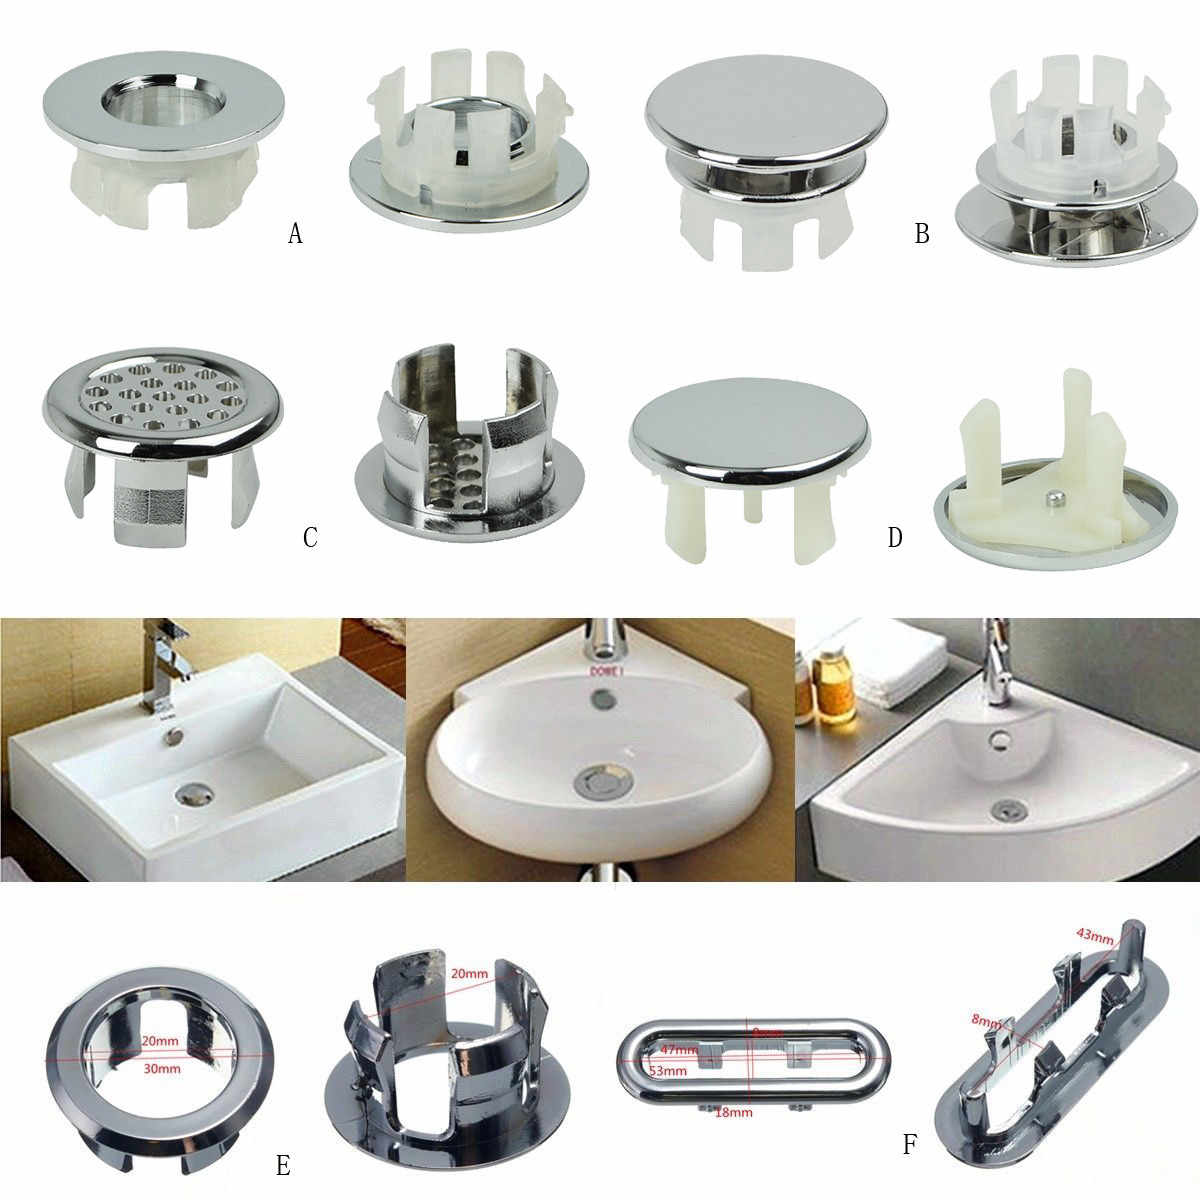 Bathroom Basin Overflow Cover 6 Assoeted Artistic Sink Overflow Spare Cover Chrome Trim Bathroom Ceramic Basin Bathroom Set